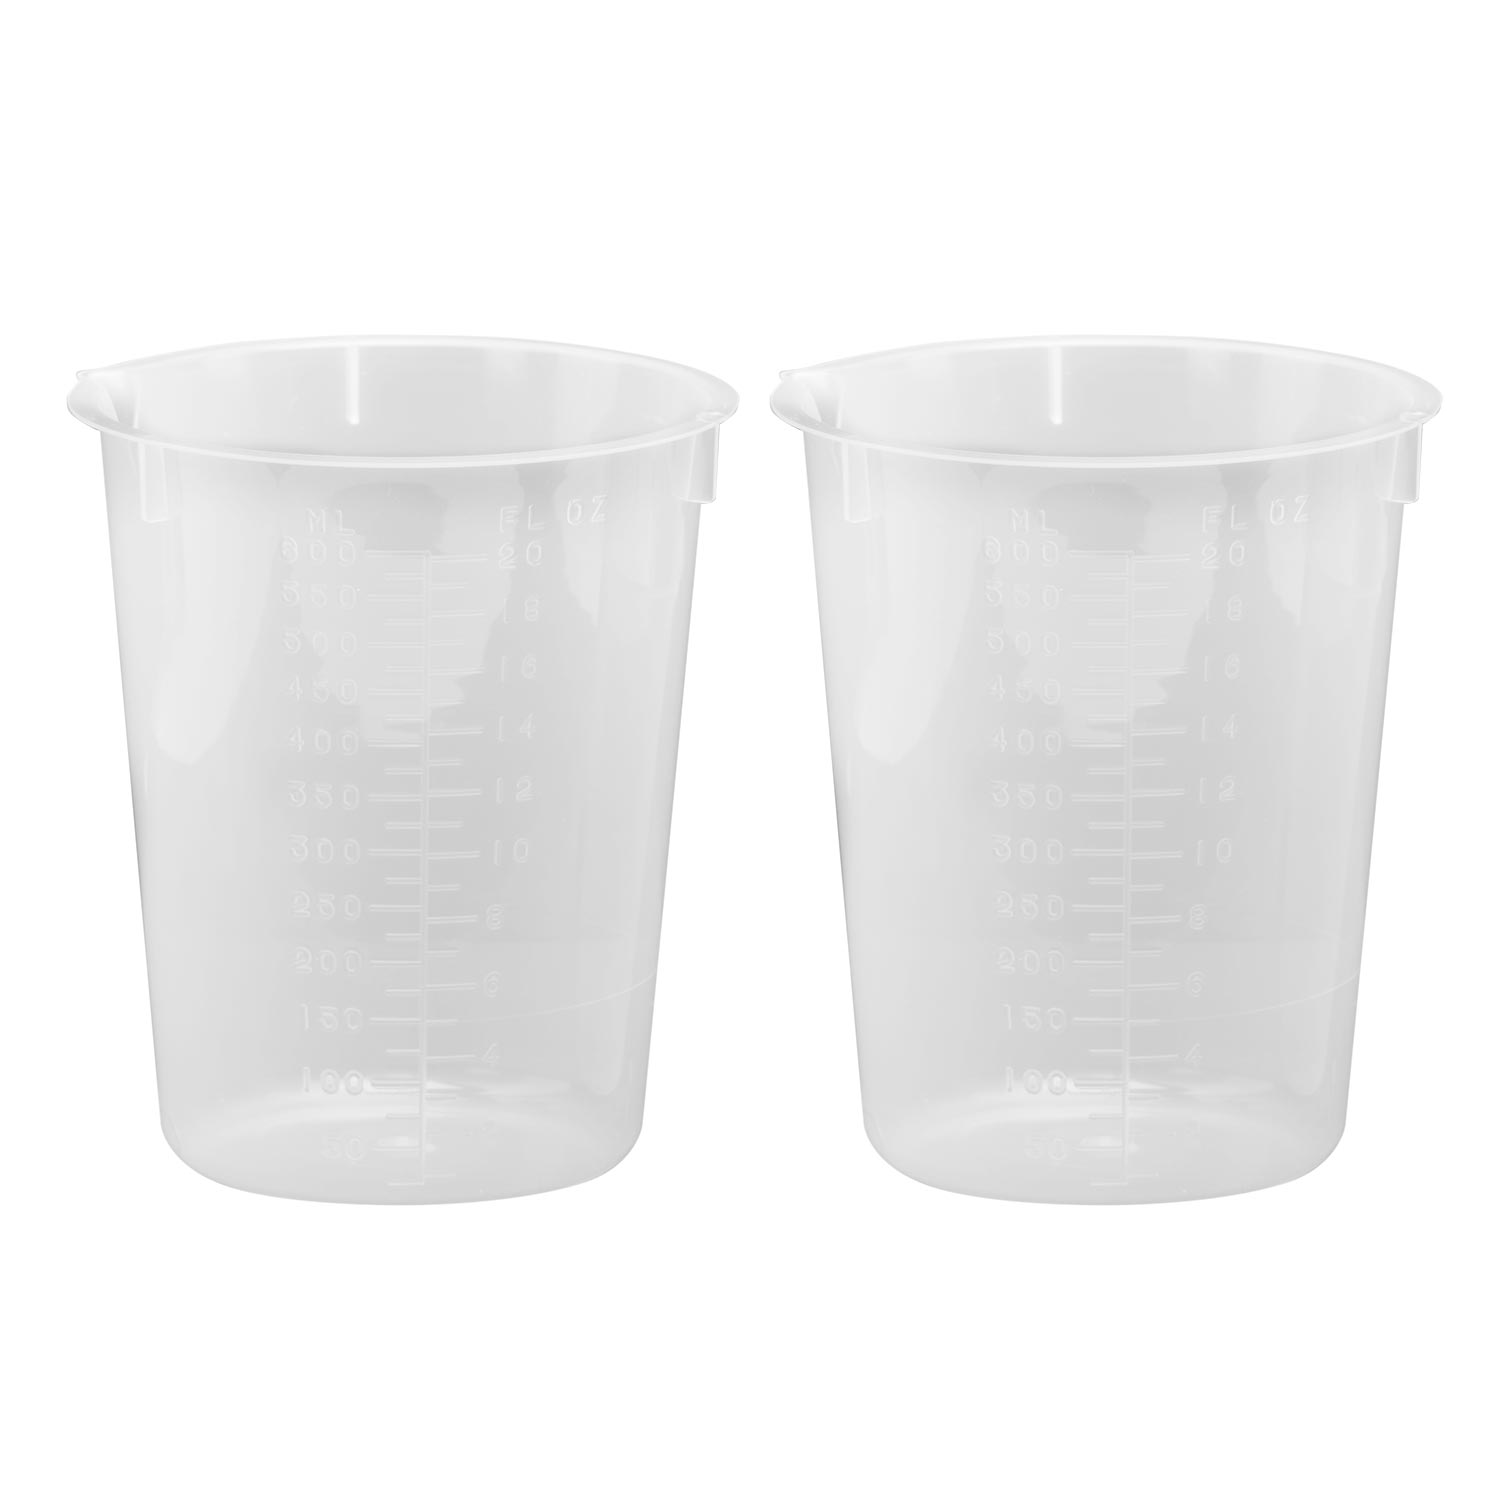 600 mL Plastic Beaker (2 Pack)